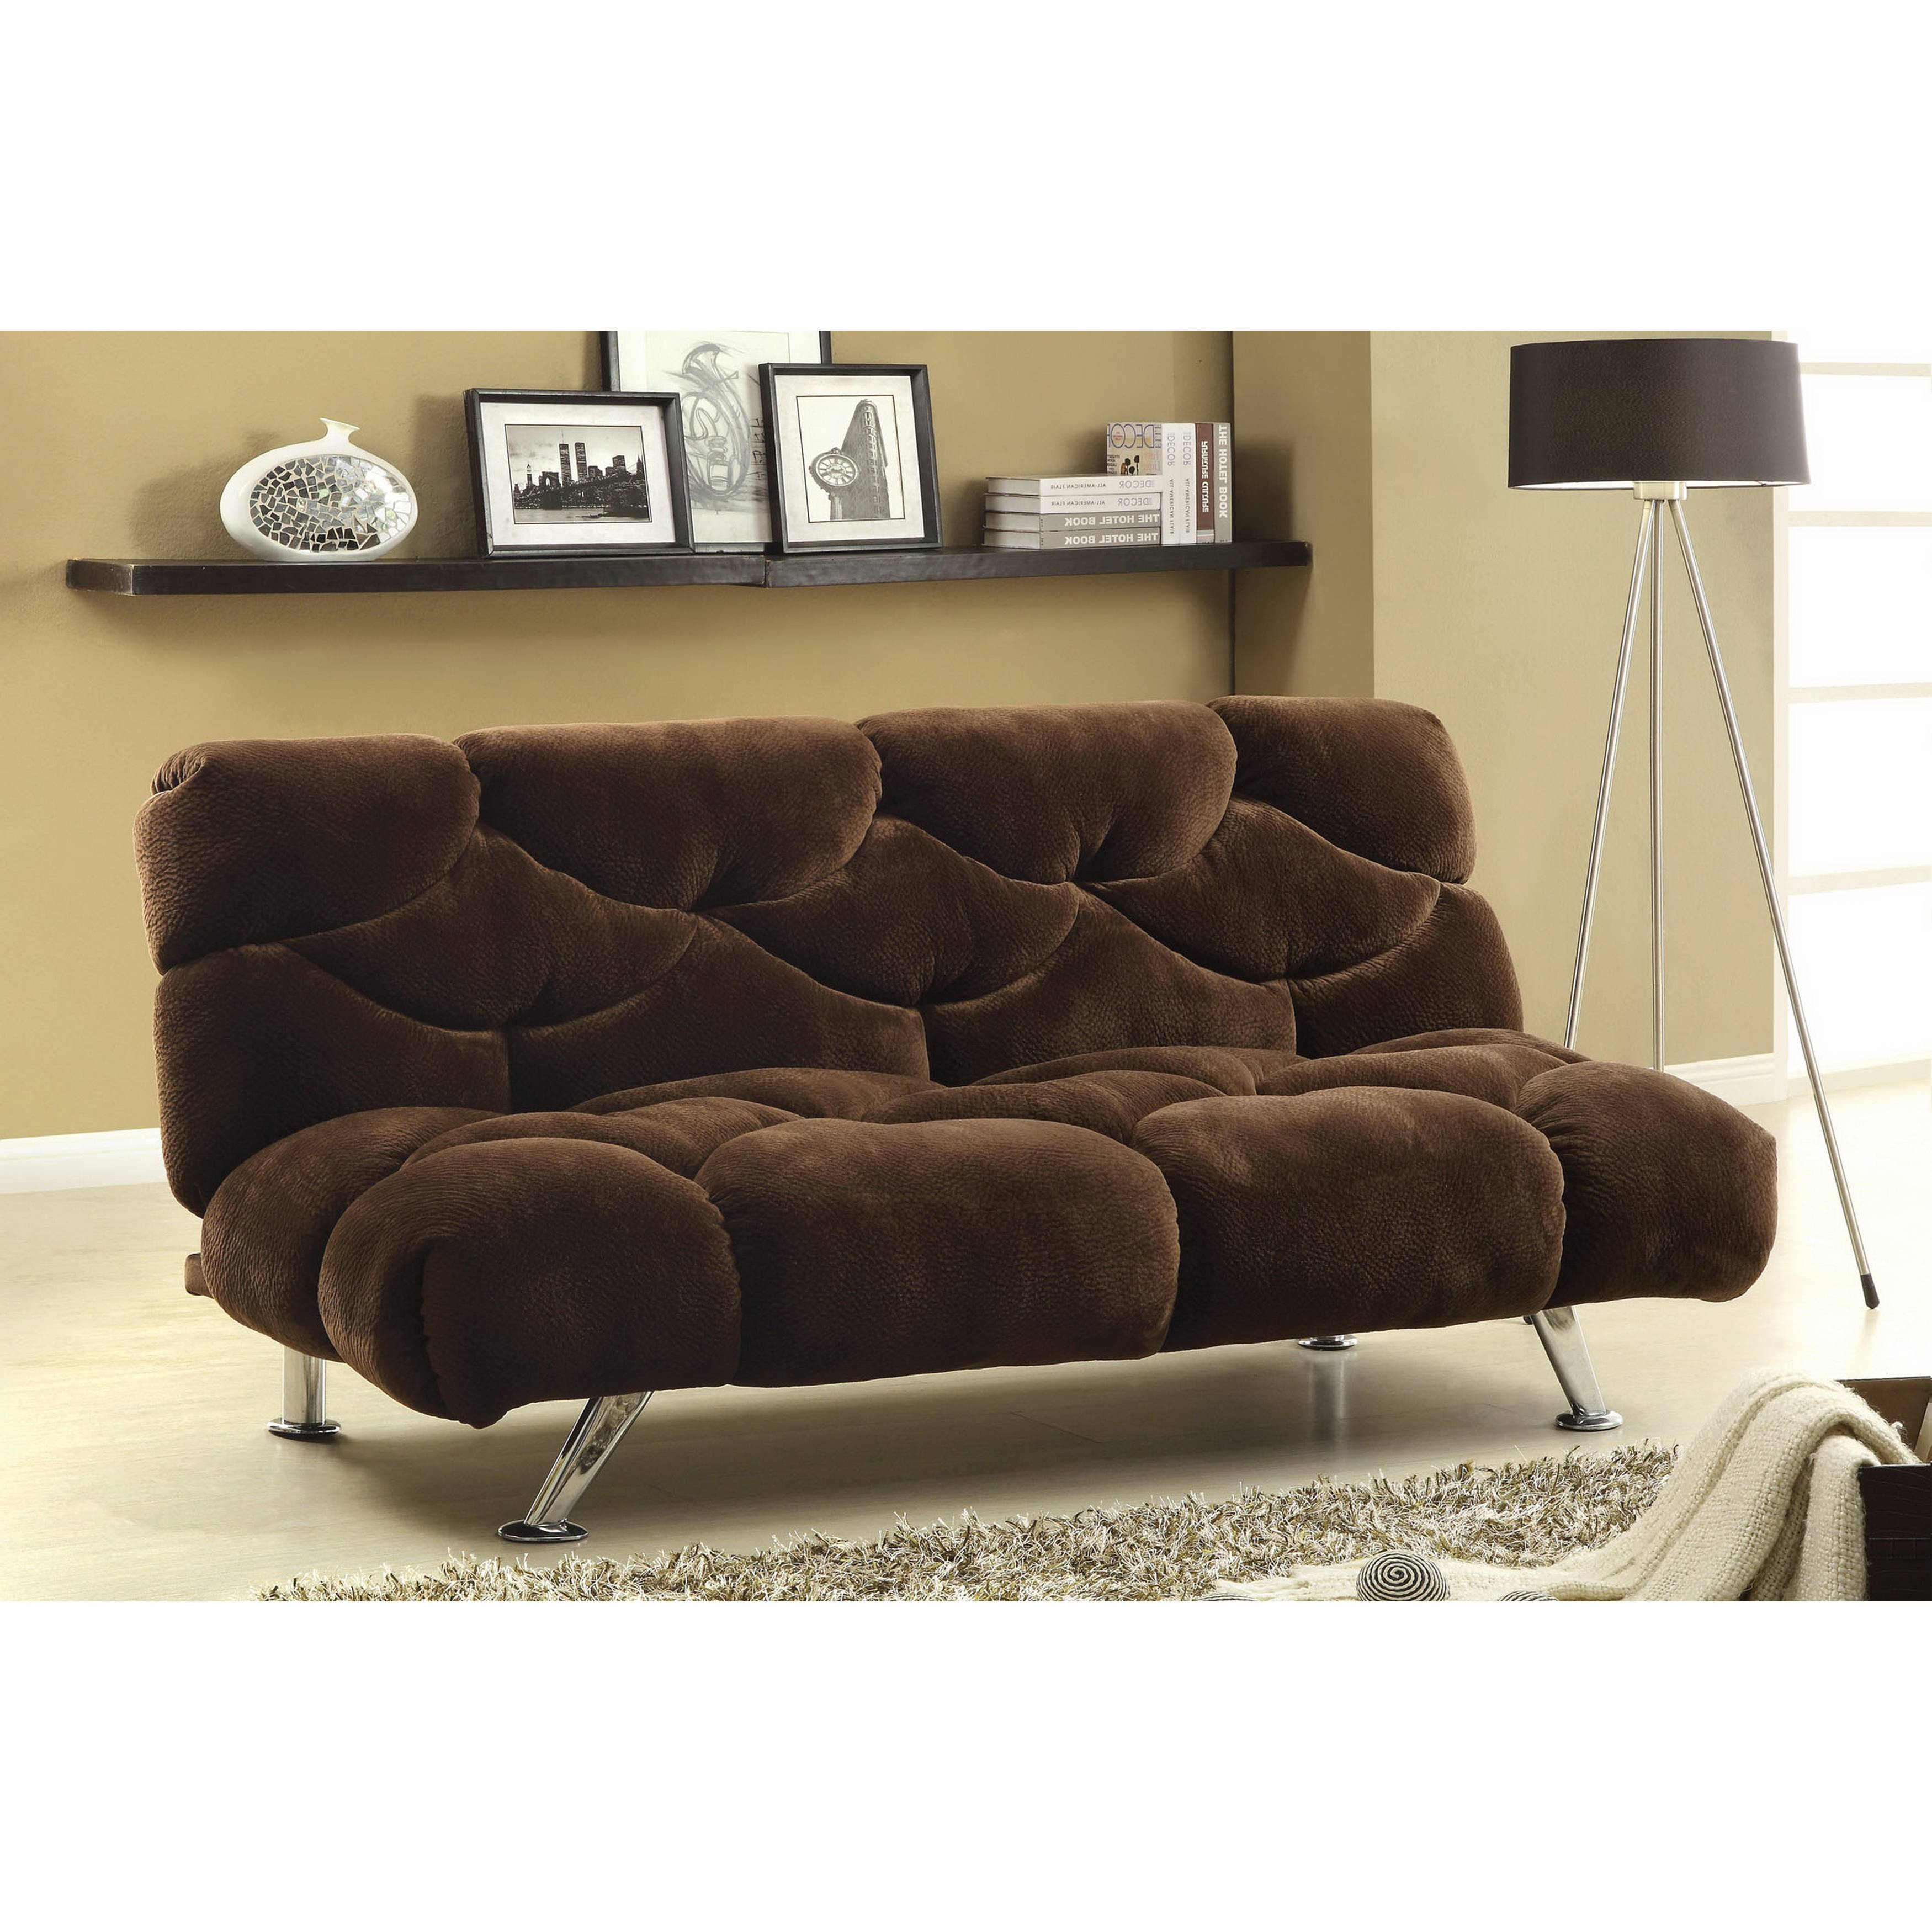 Furniture : Futon Beds Target For Wonderful Home Furniture Ideas pertaining to Target Couch Beds (Image 2 of 15)